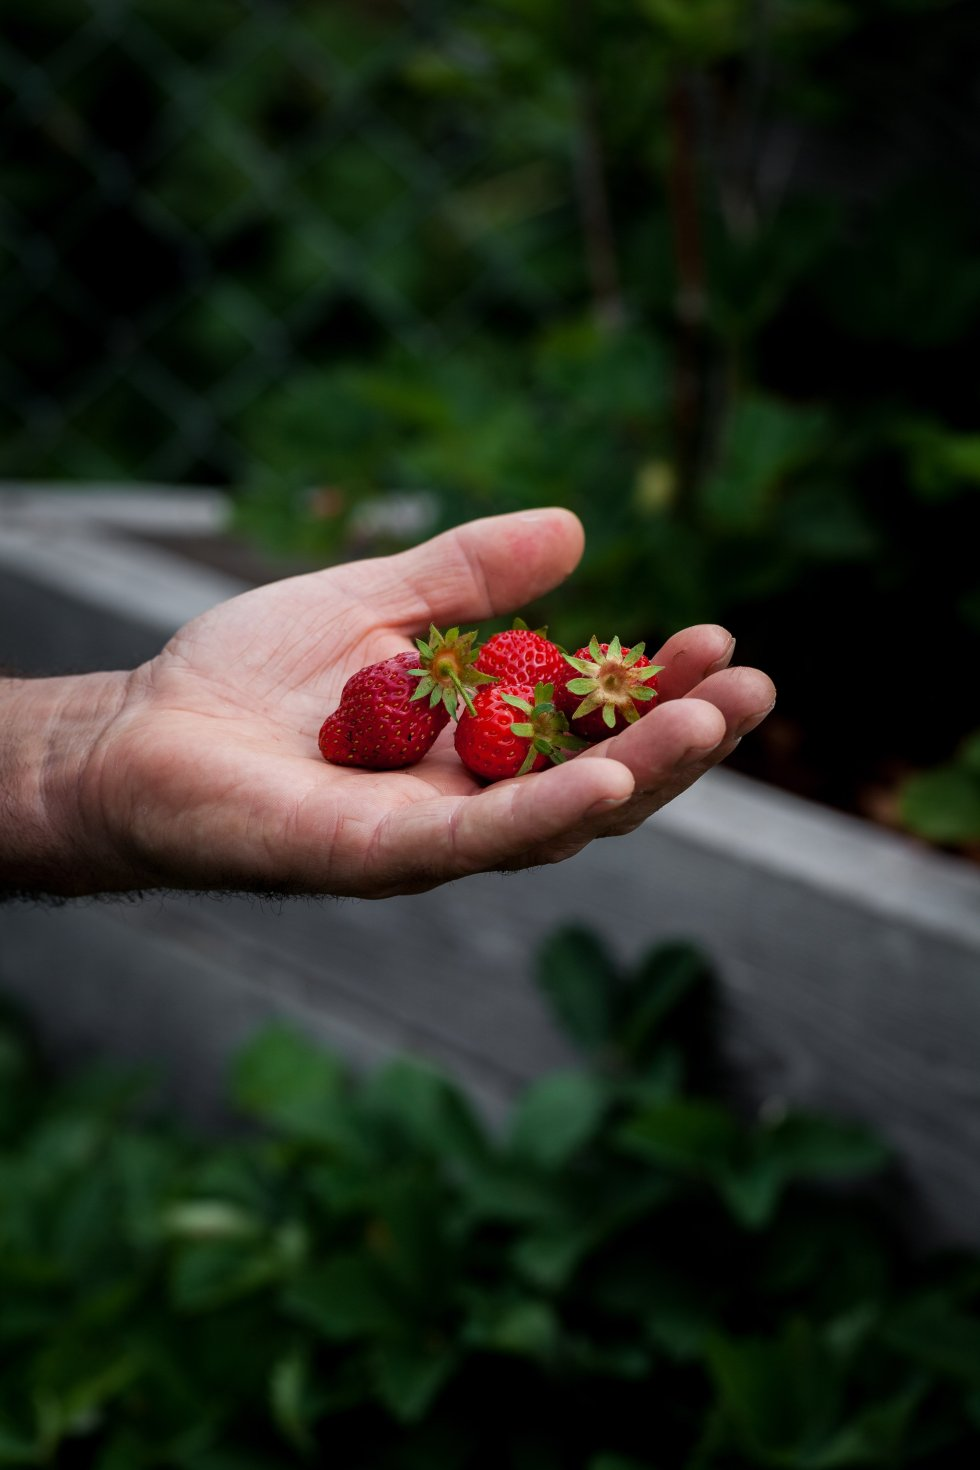 Strawberries in hand - The Simple Green